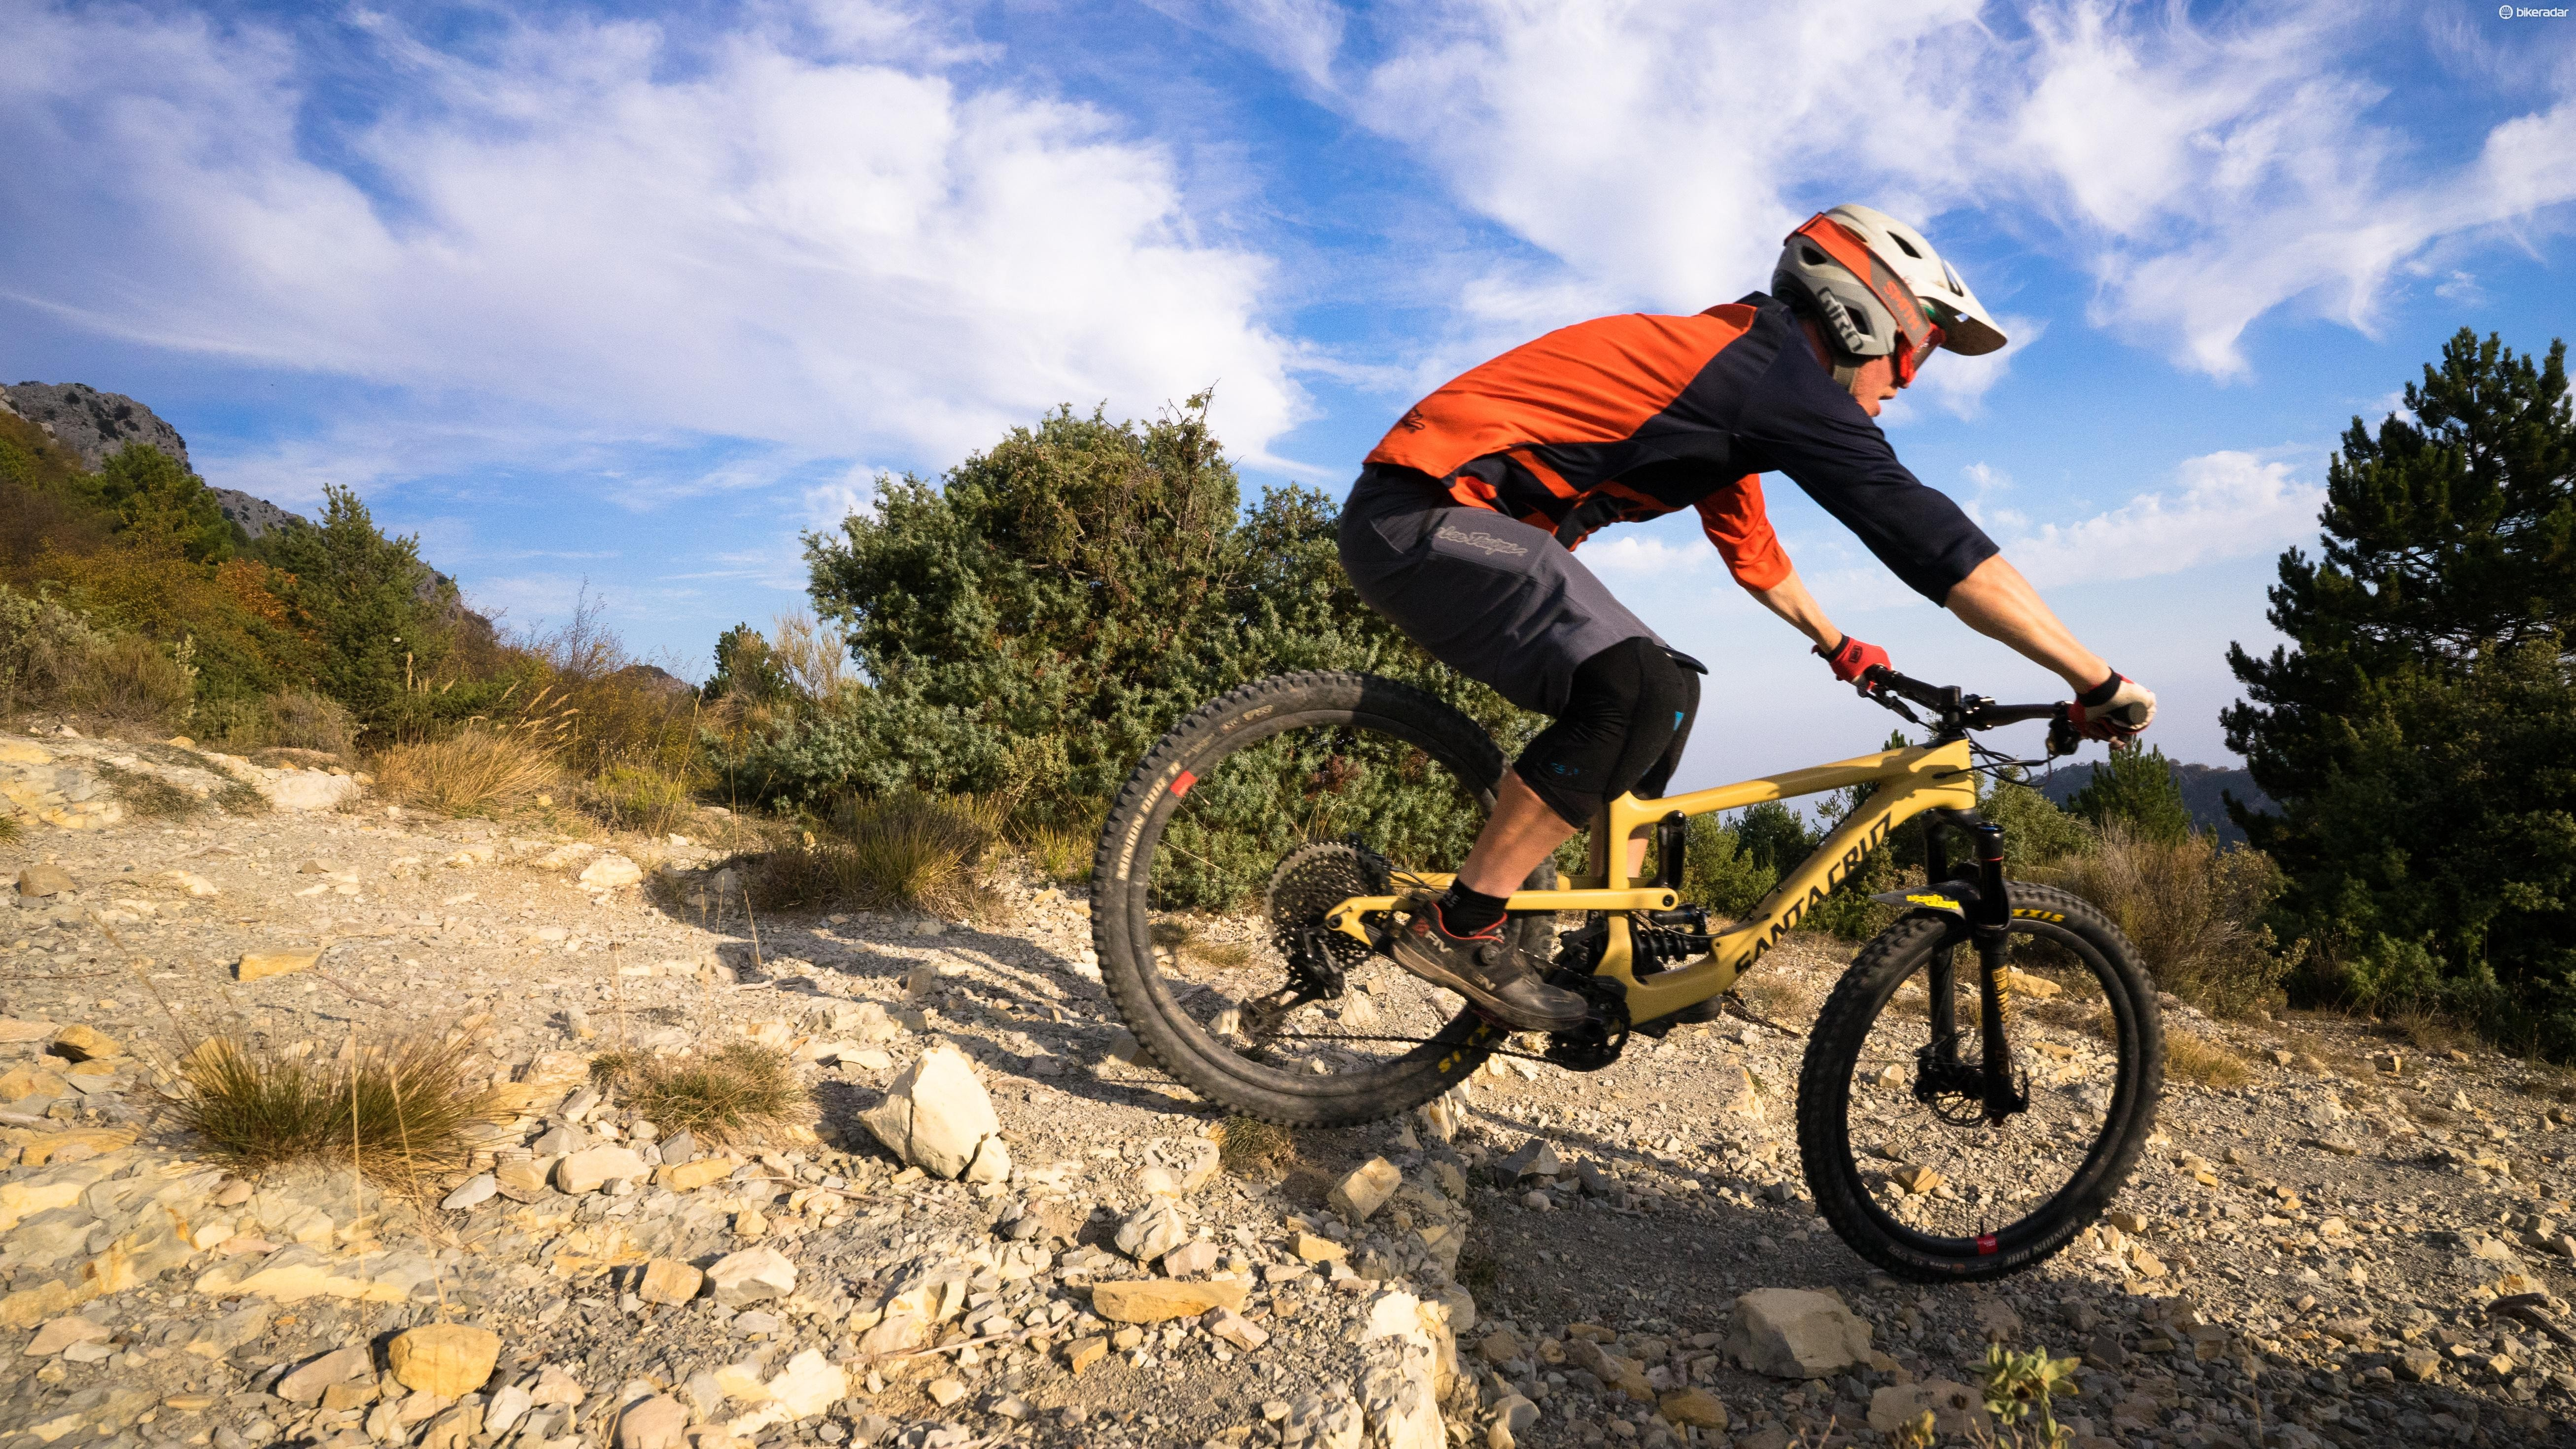 We took the Santa Cruz Nomad CC XX1 Reserve out to Peille, France as one of our Headline Bikes for 2018